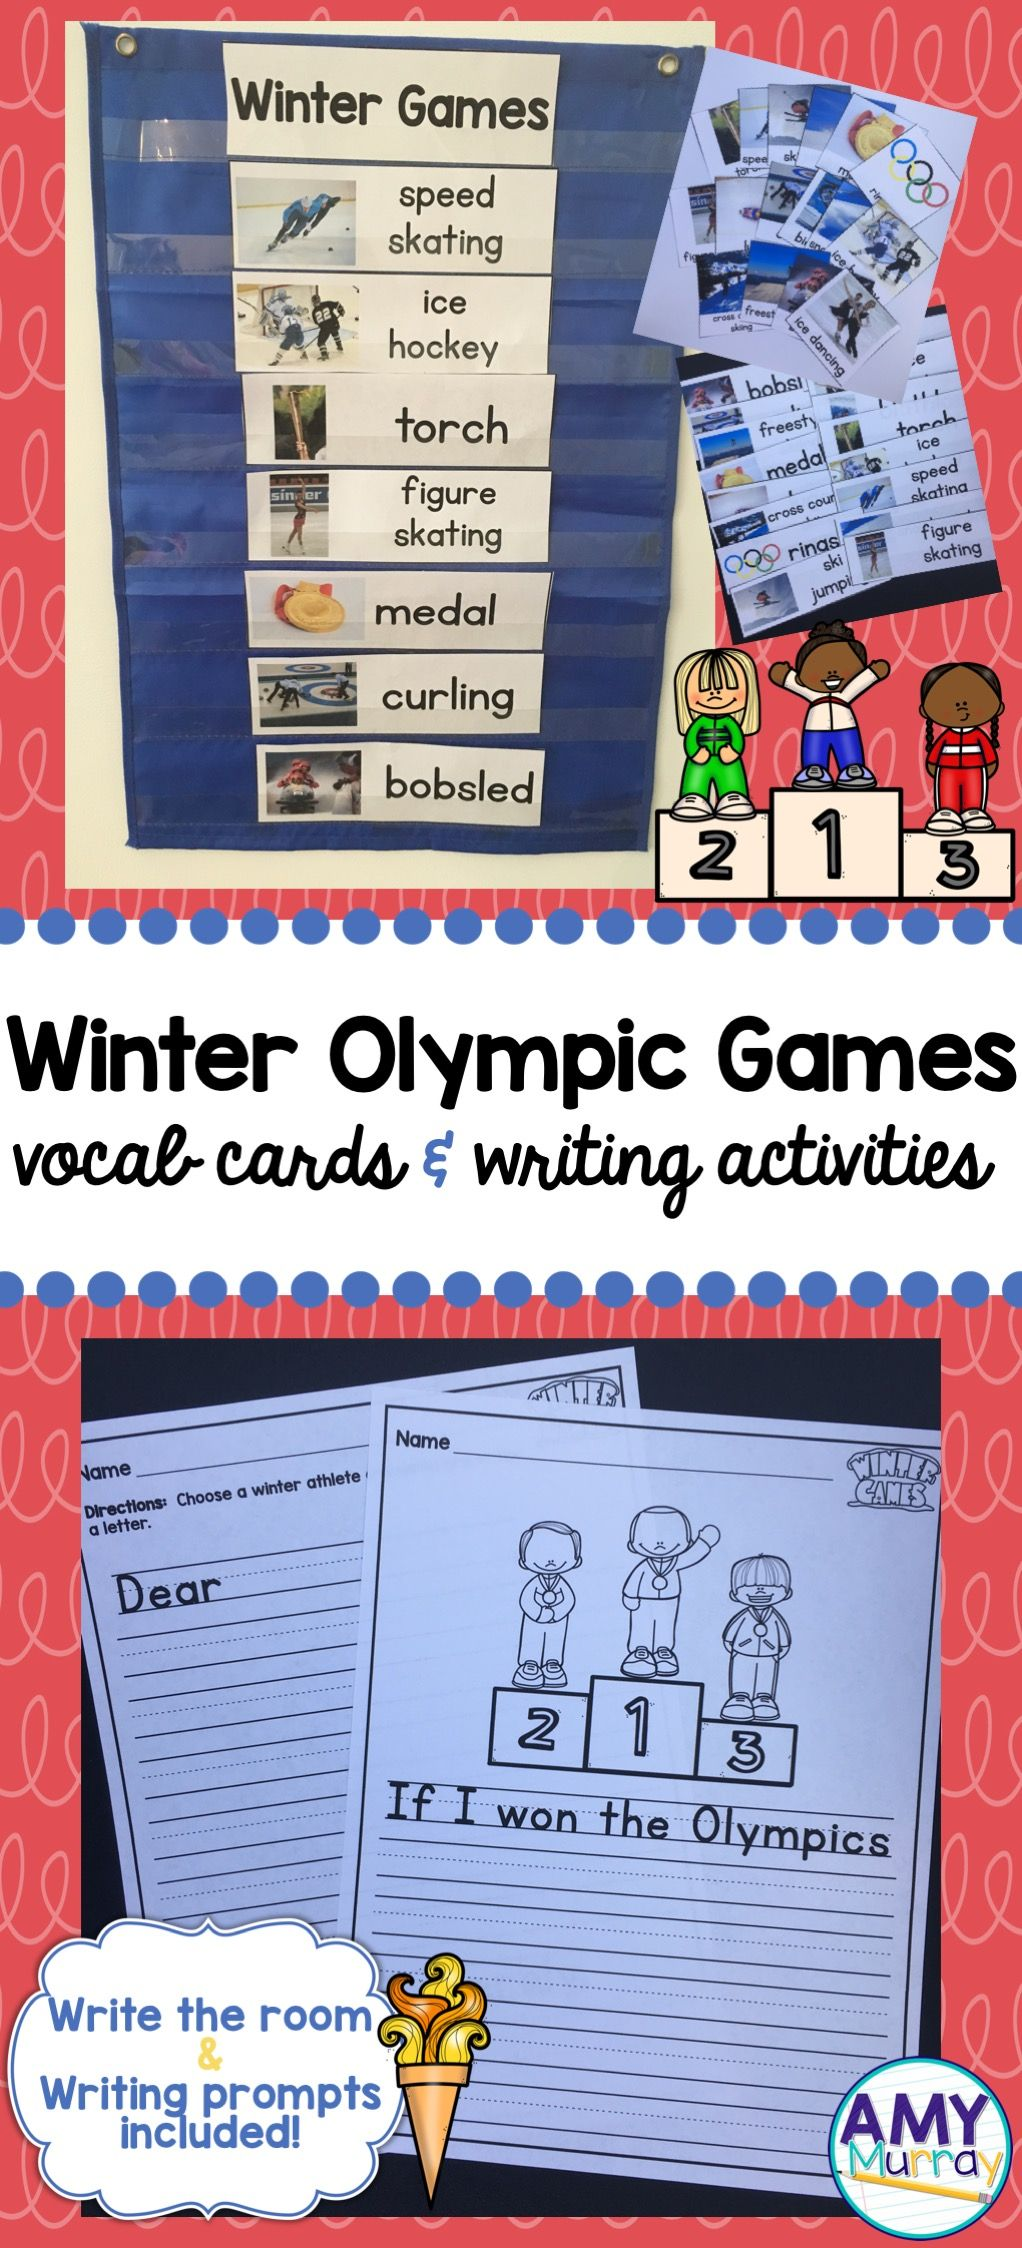 winter games picture vocab cards and writing activities tpt products. Black Bedroom Furniture Sets. Home Design Ideas